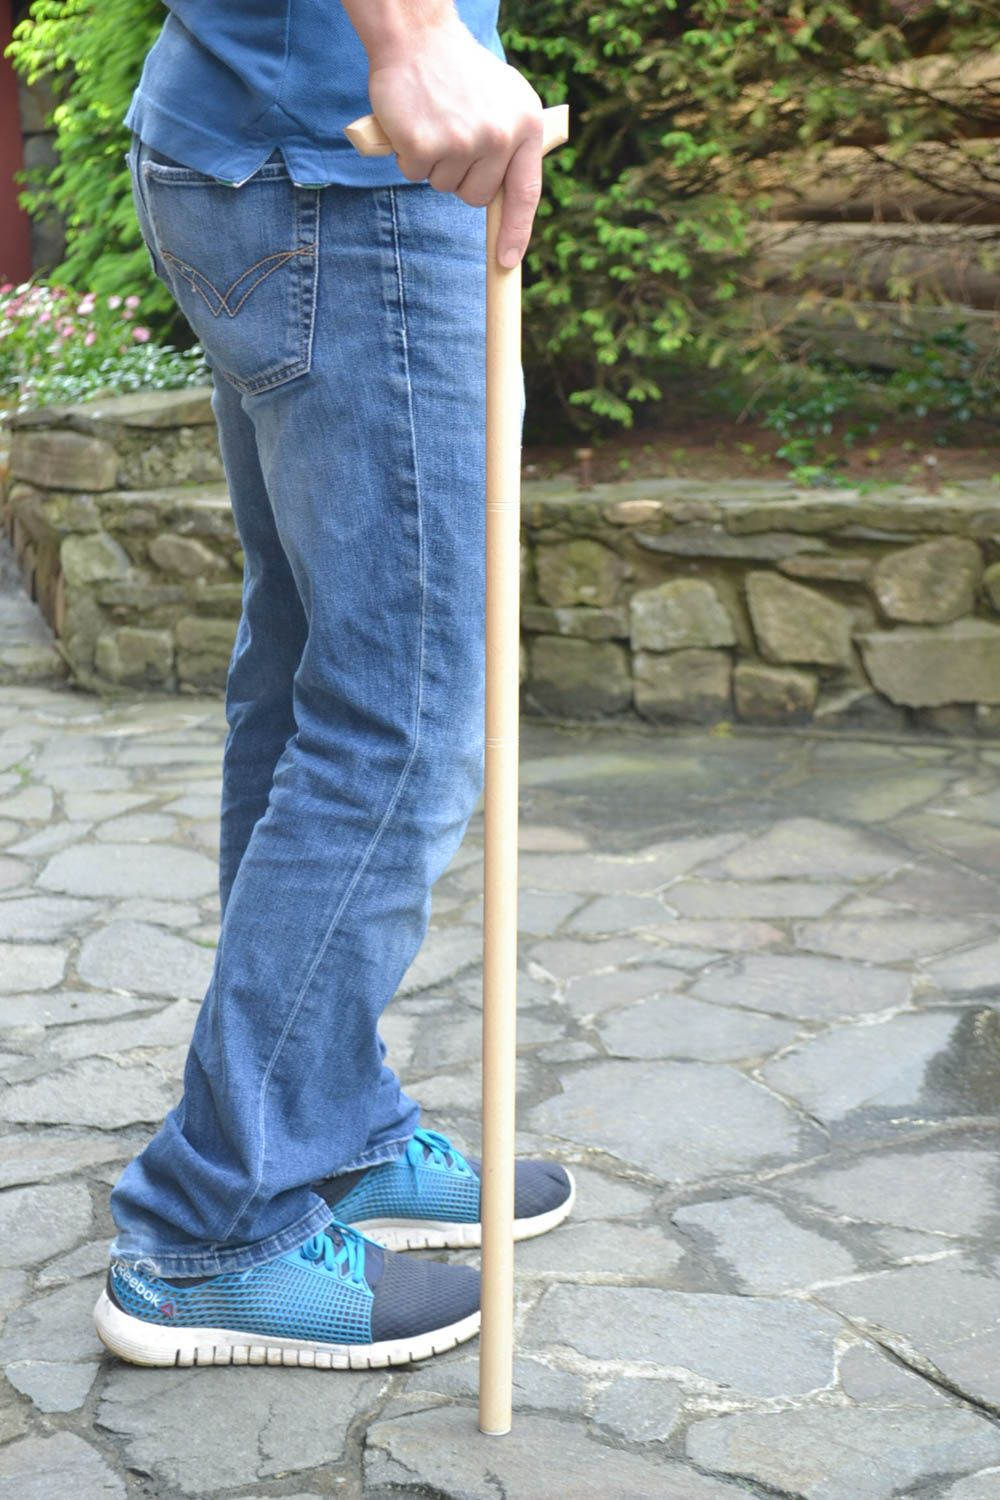 canes Handmade designer varnished light wooden walking stick with art carving for men - MADEheart.com